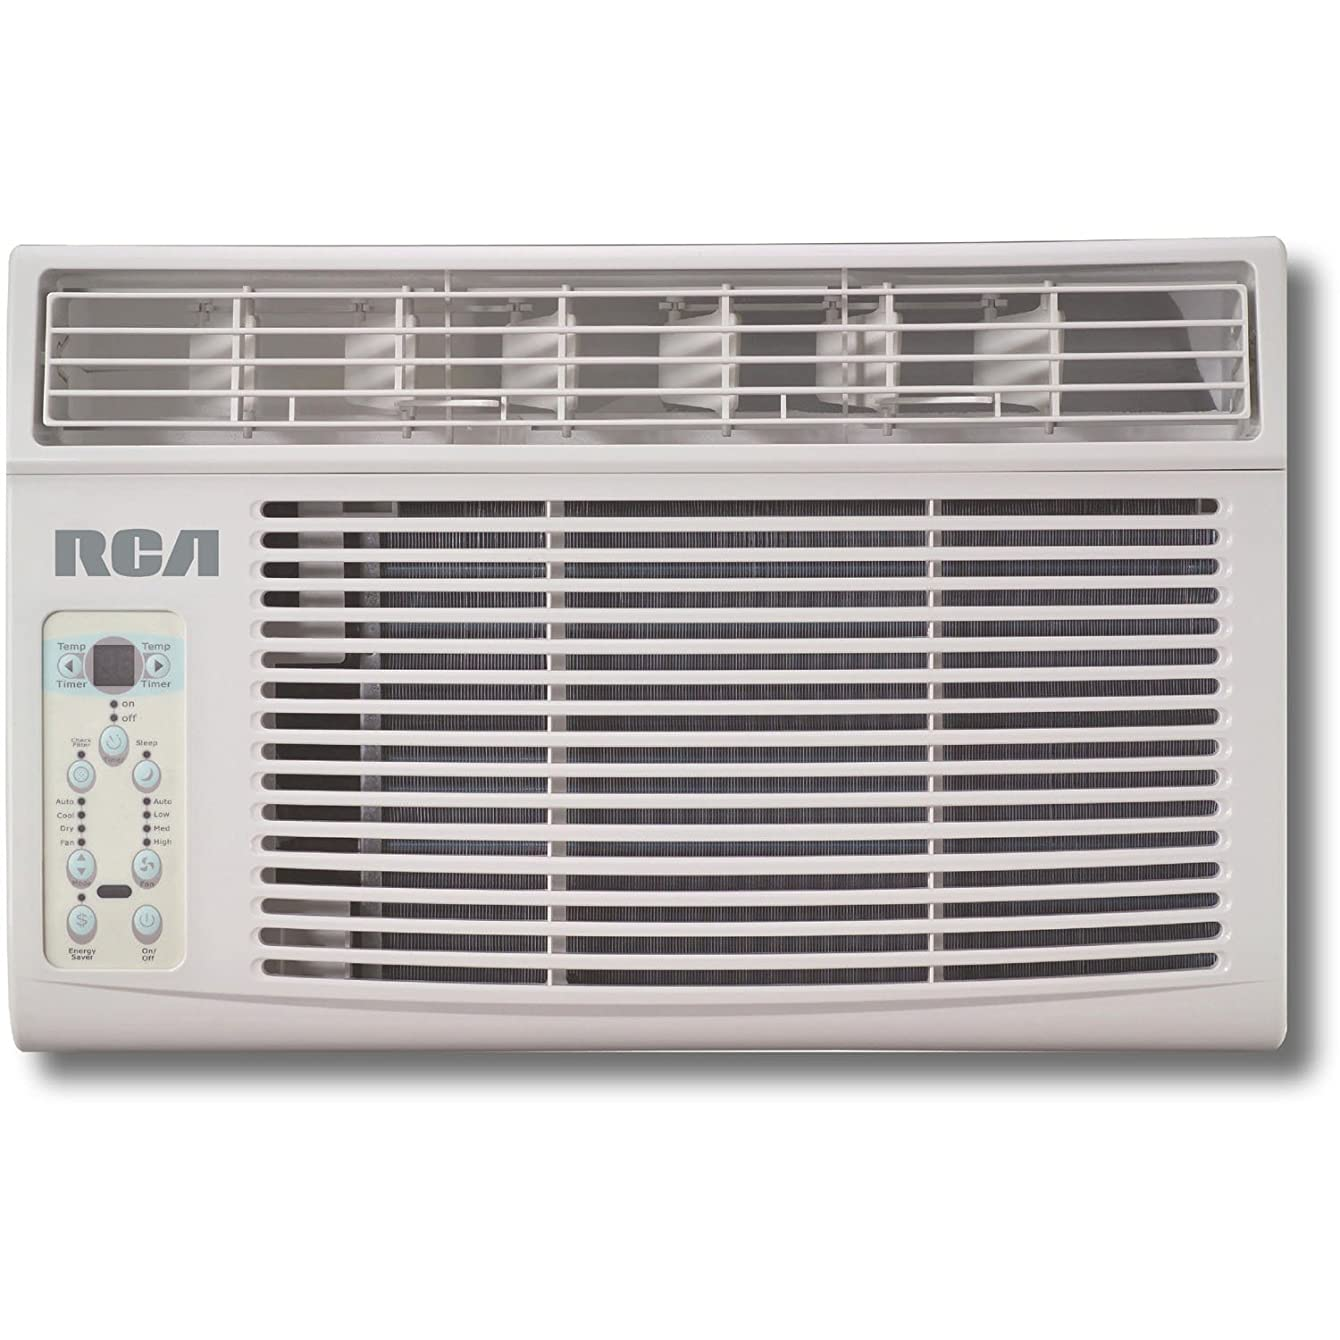 RCA RACE1202E 12,000 BTU 115V Remote Control Window Air Conditioner, White